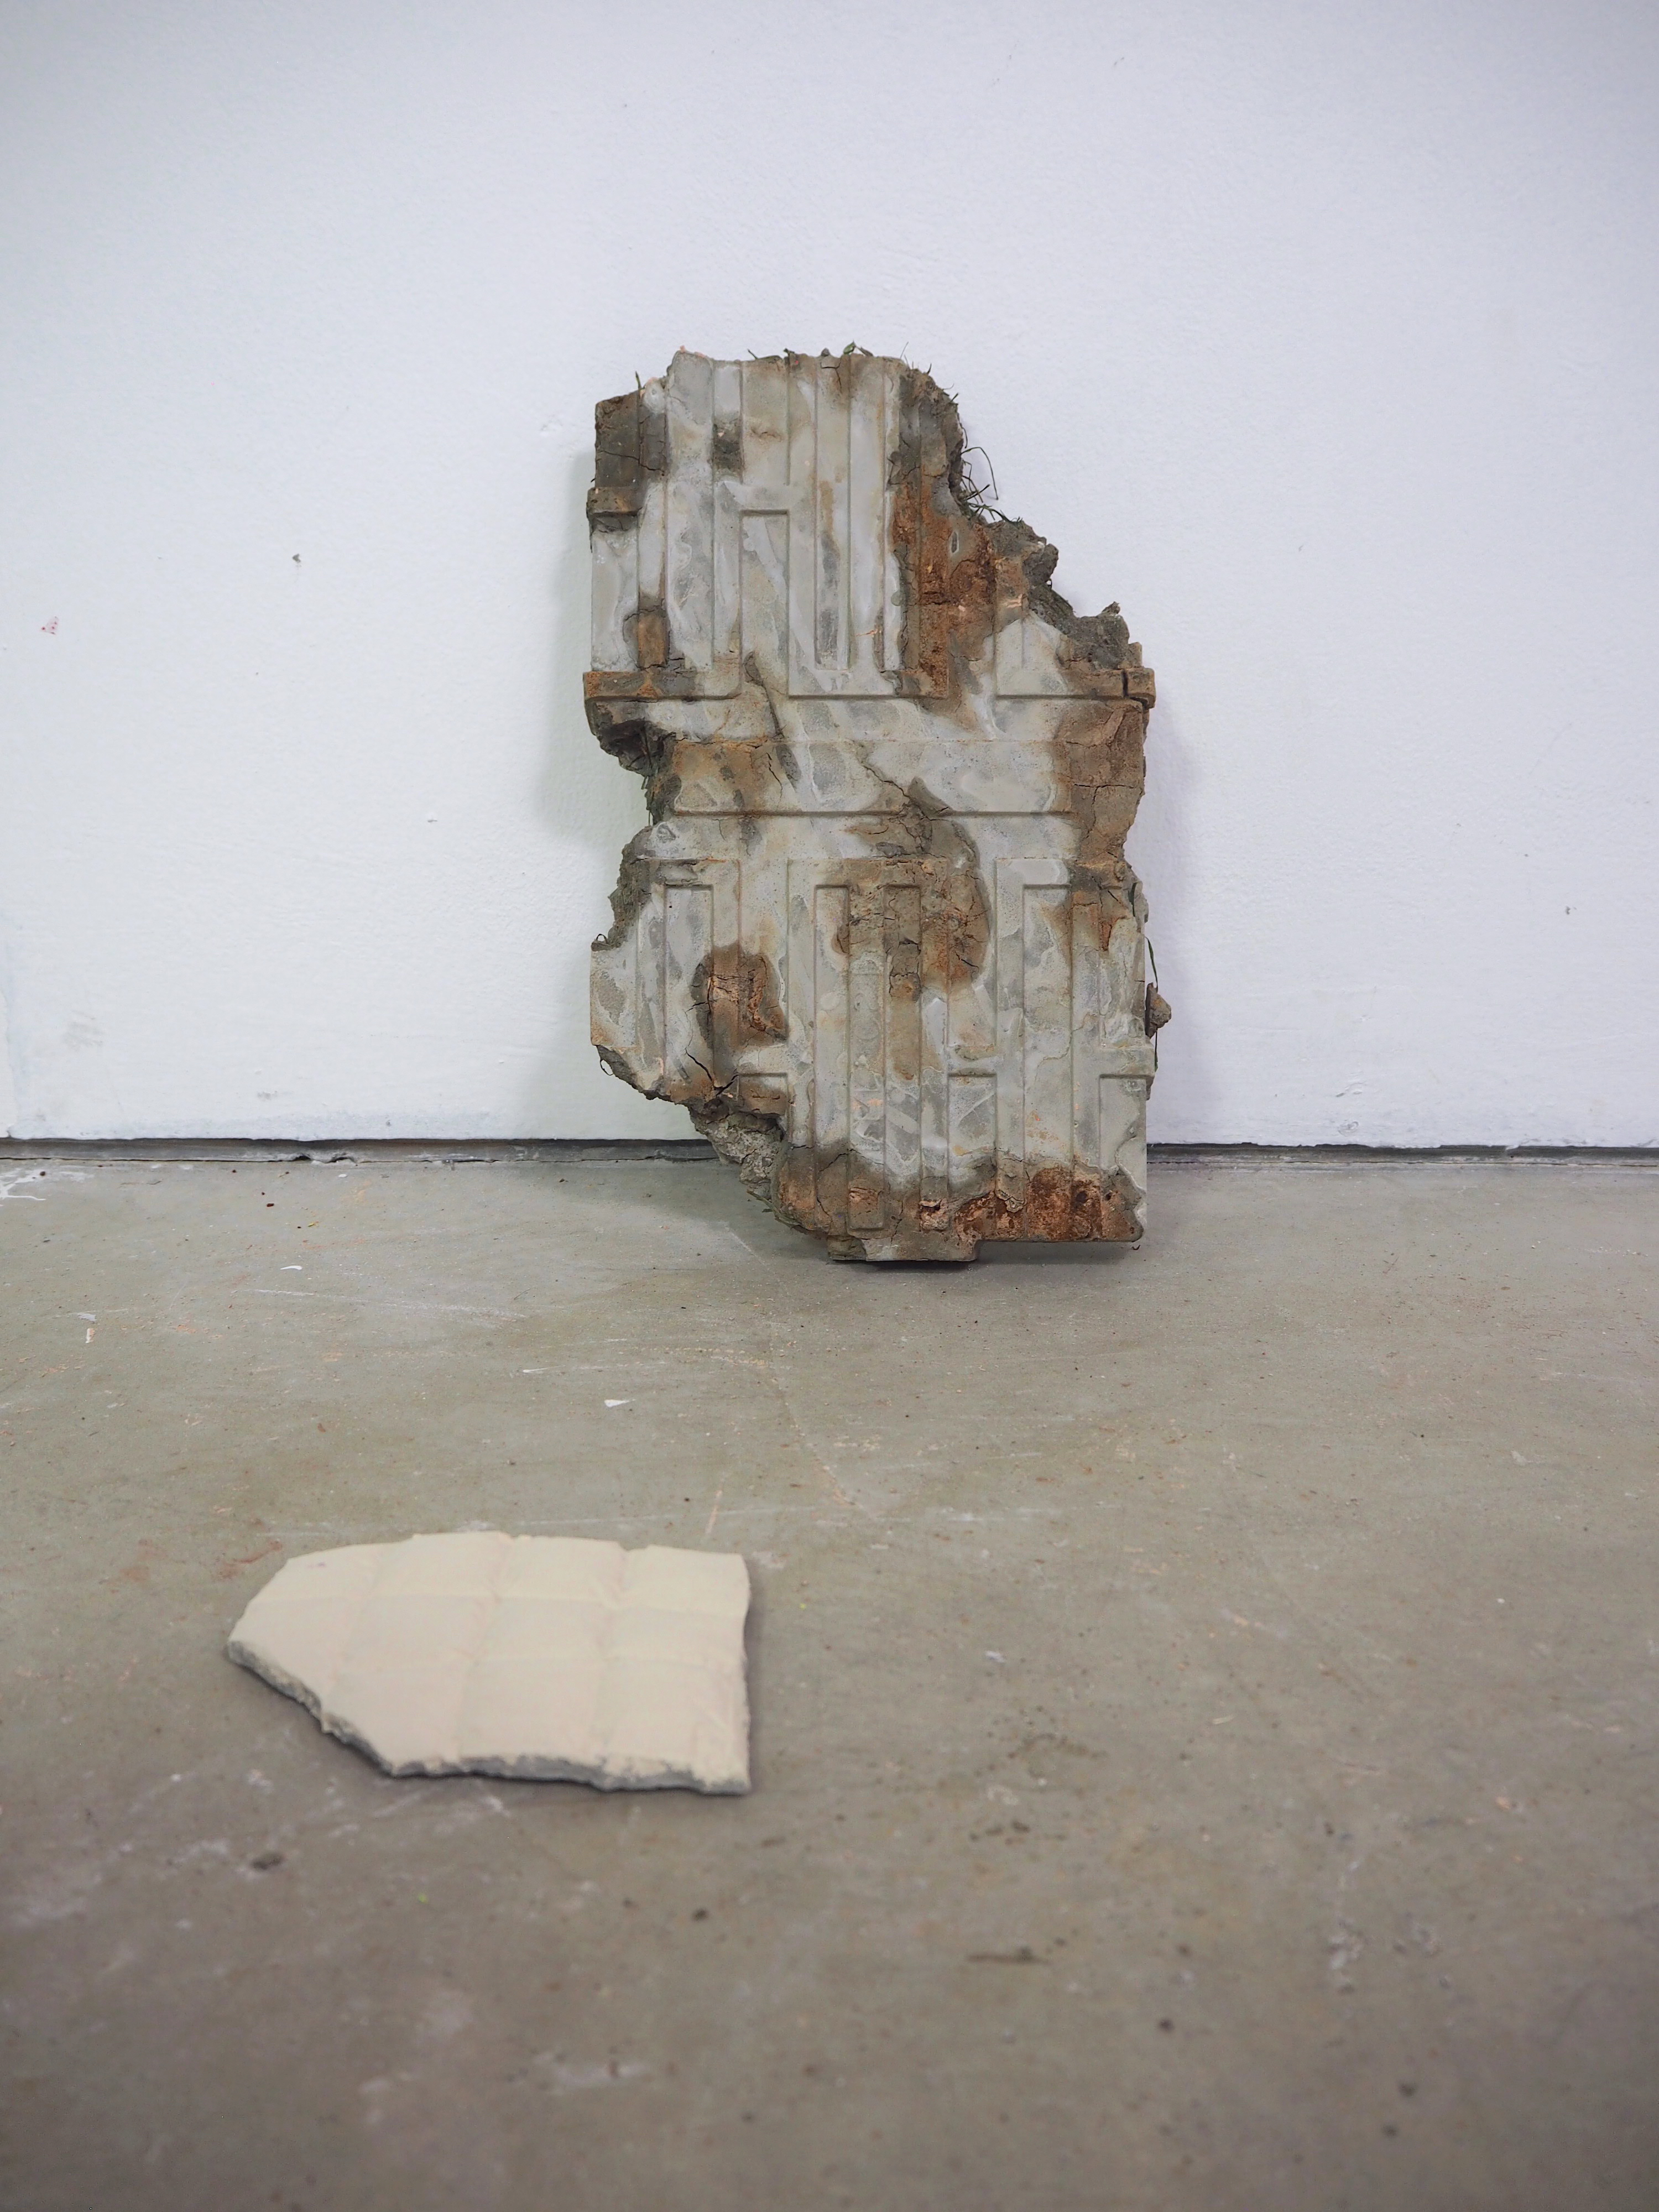 brown and grey sculpture on floor infant of white wall